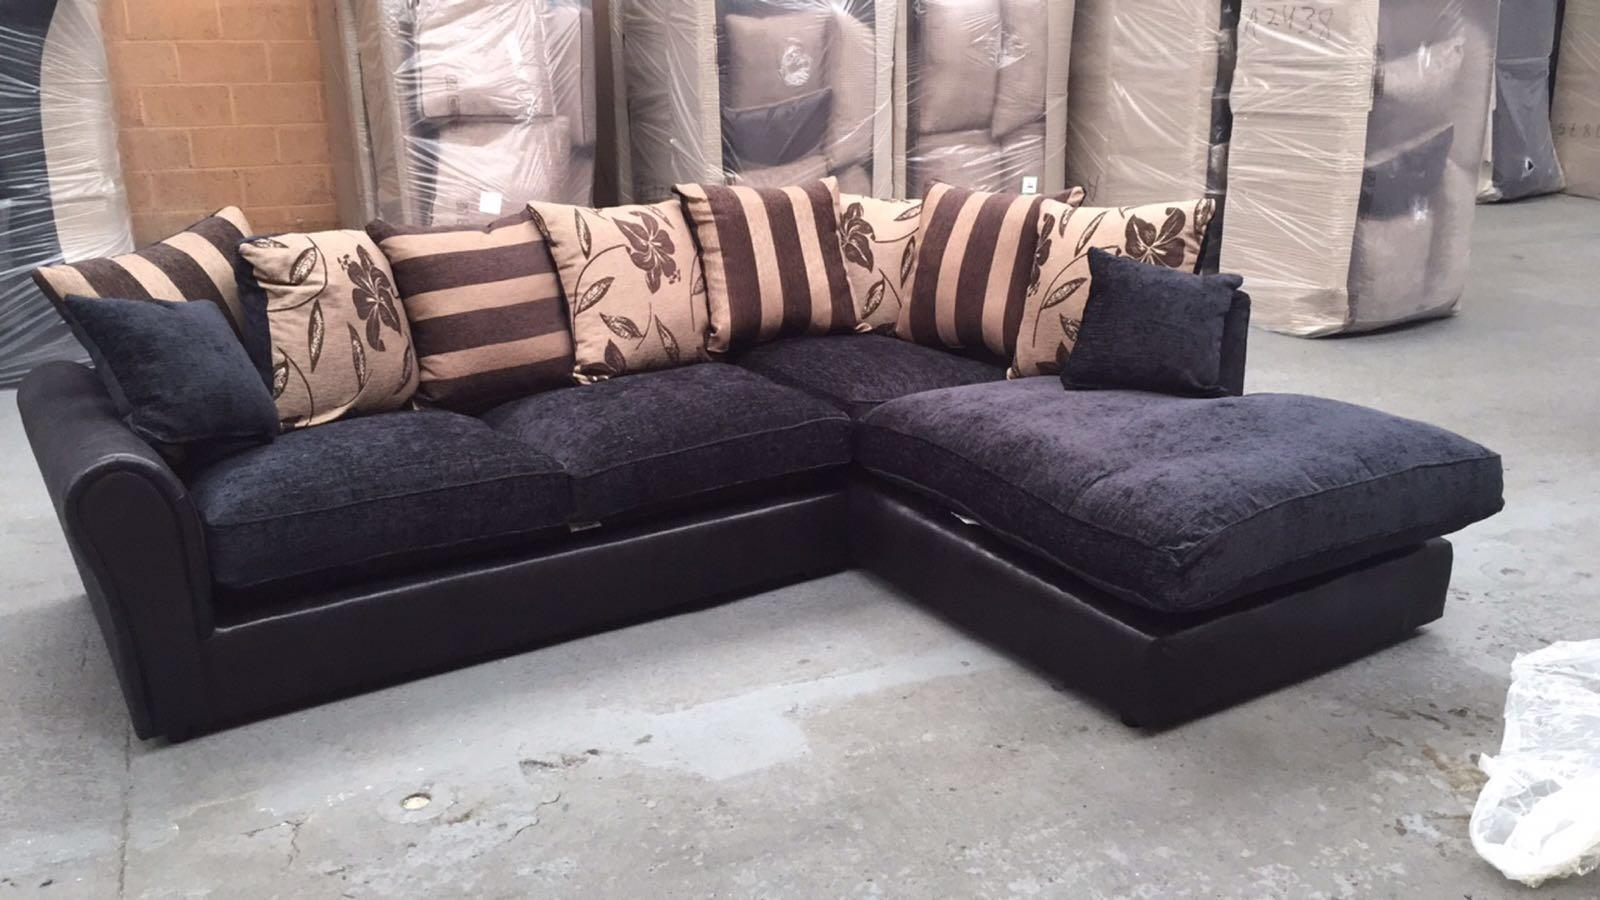 Barcelona Black Corner Sofa, Beds Direct Warehouse, Gainsborough Within Black Corner Sofas (Image 1 of 20)